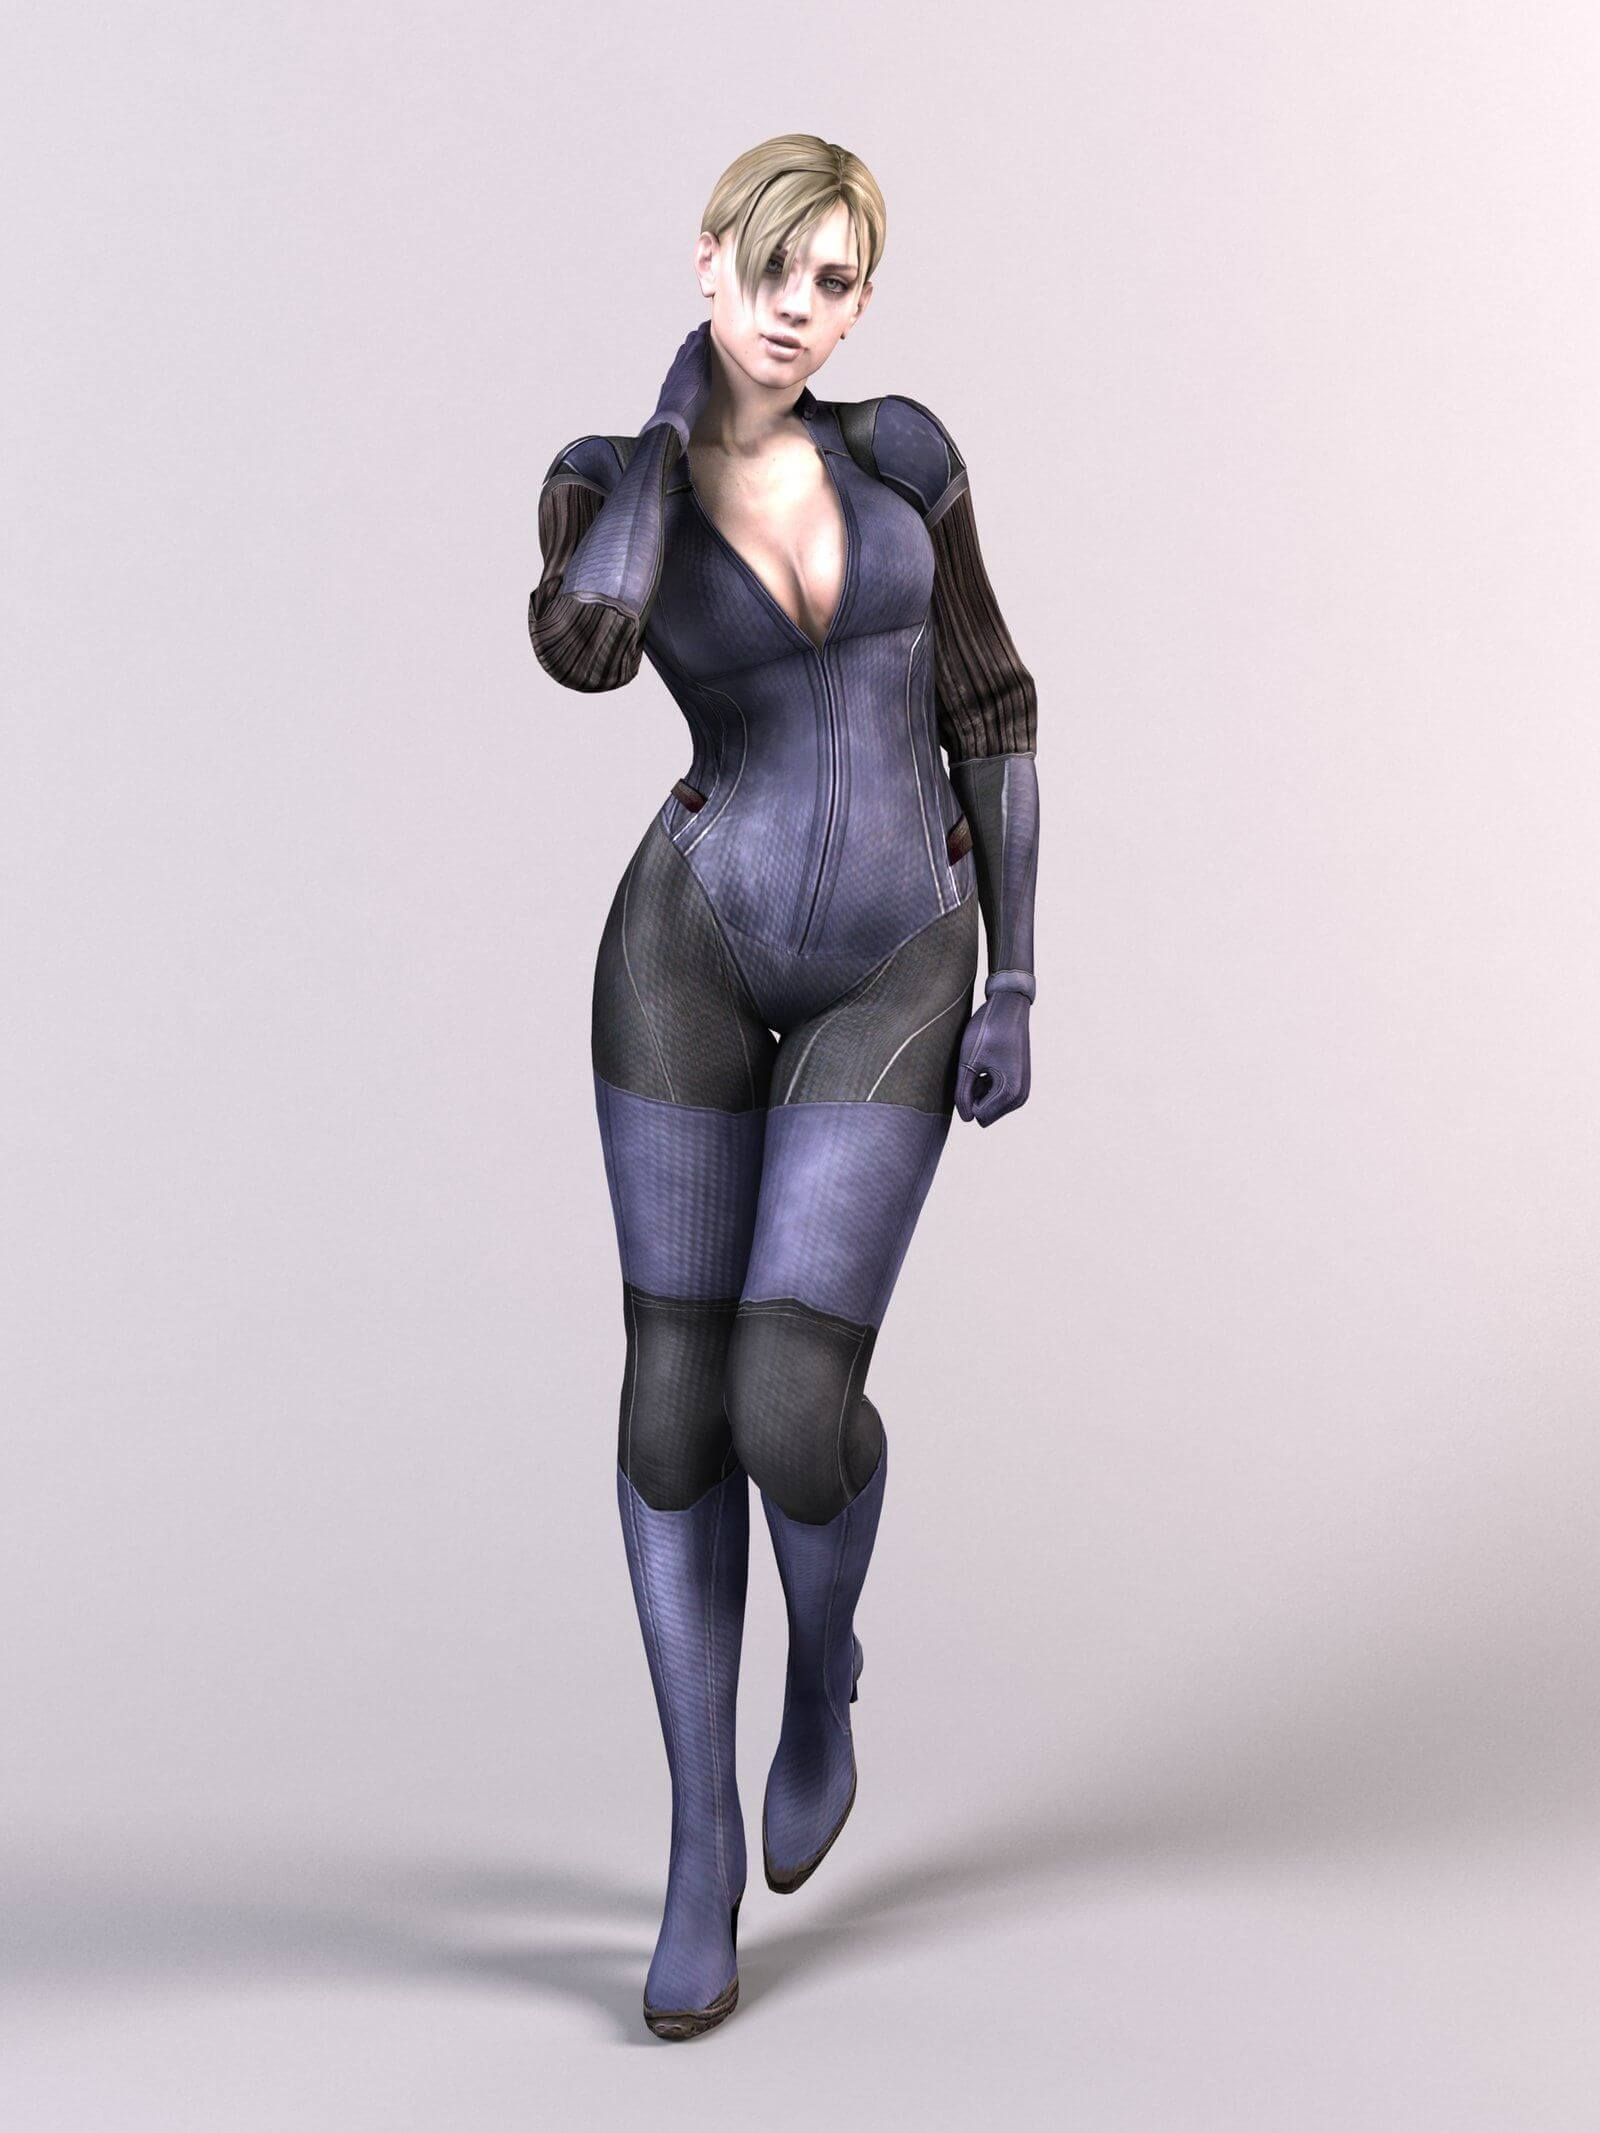 Jill Valentine awesome